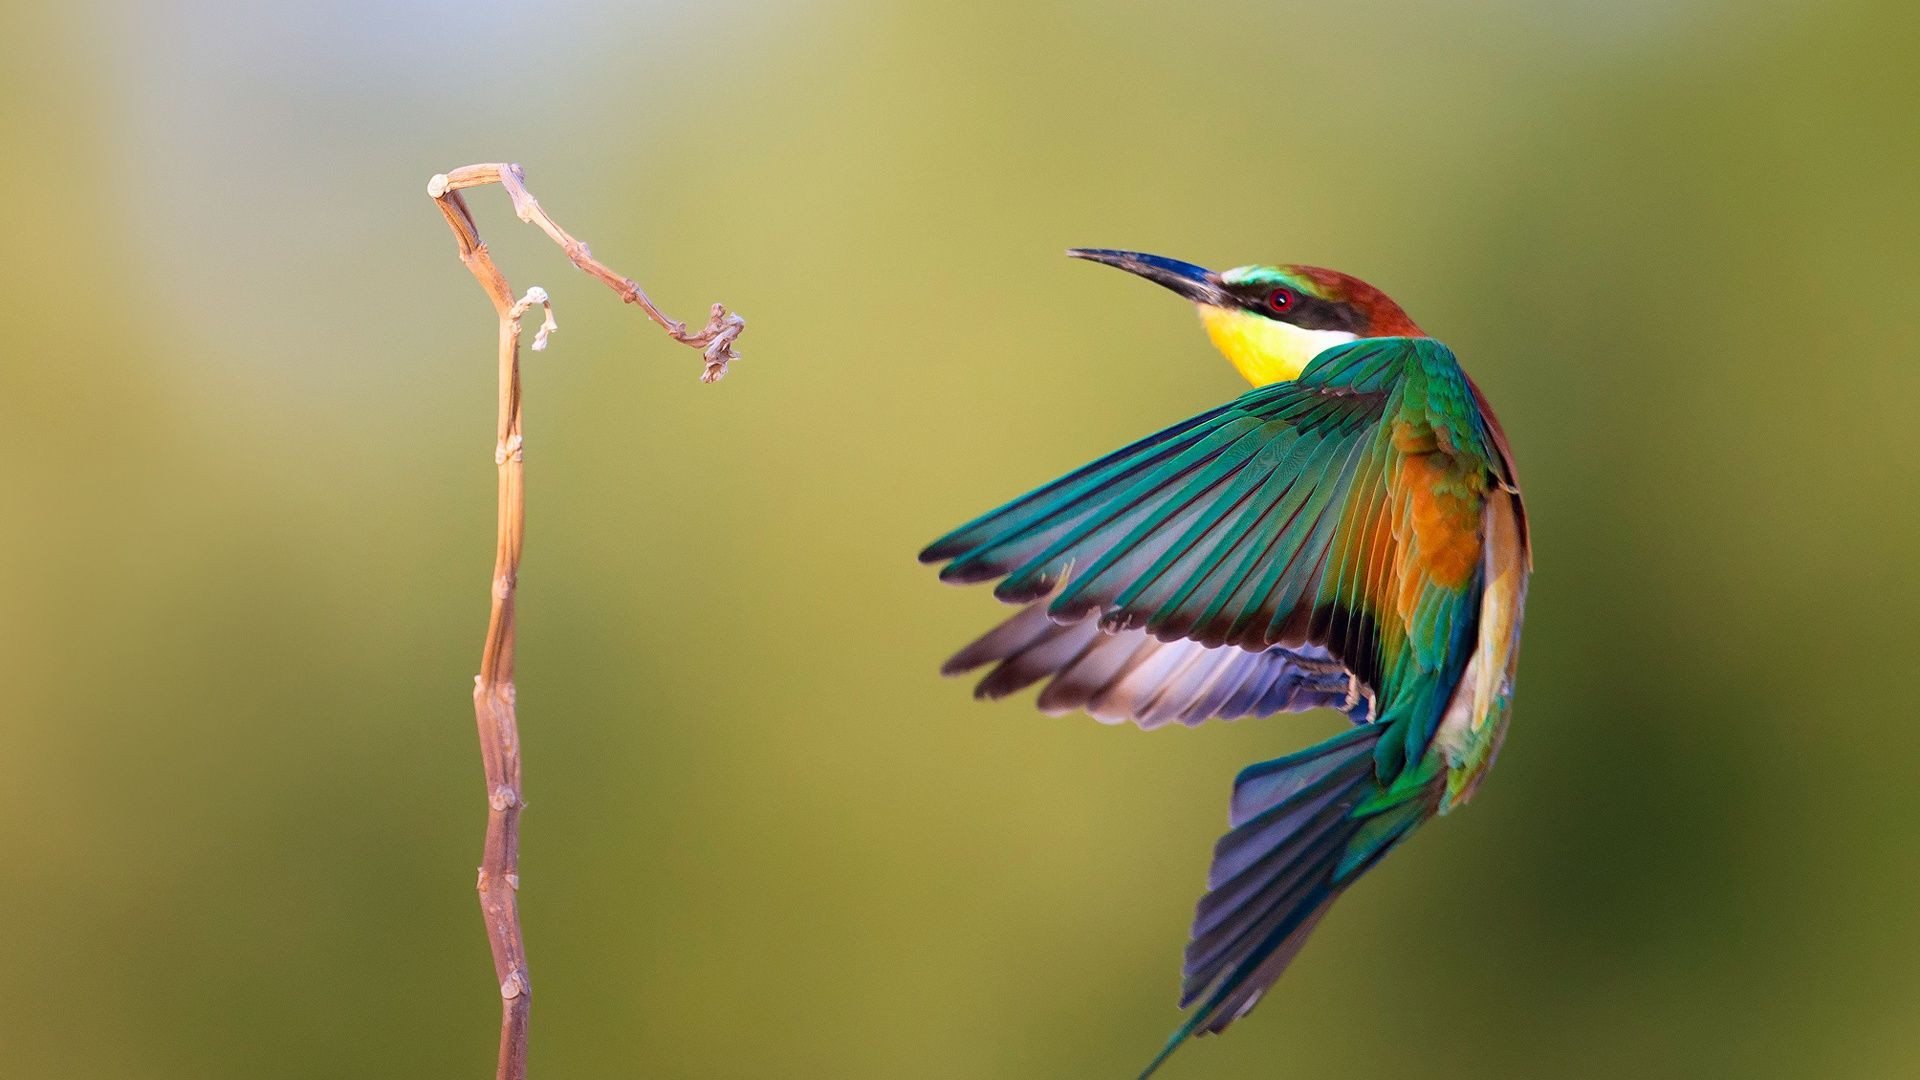 Kingfisher Flight Speed Photography Wallpaper